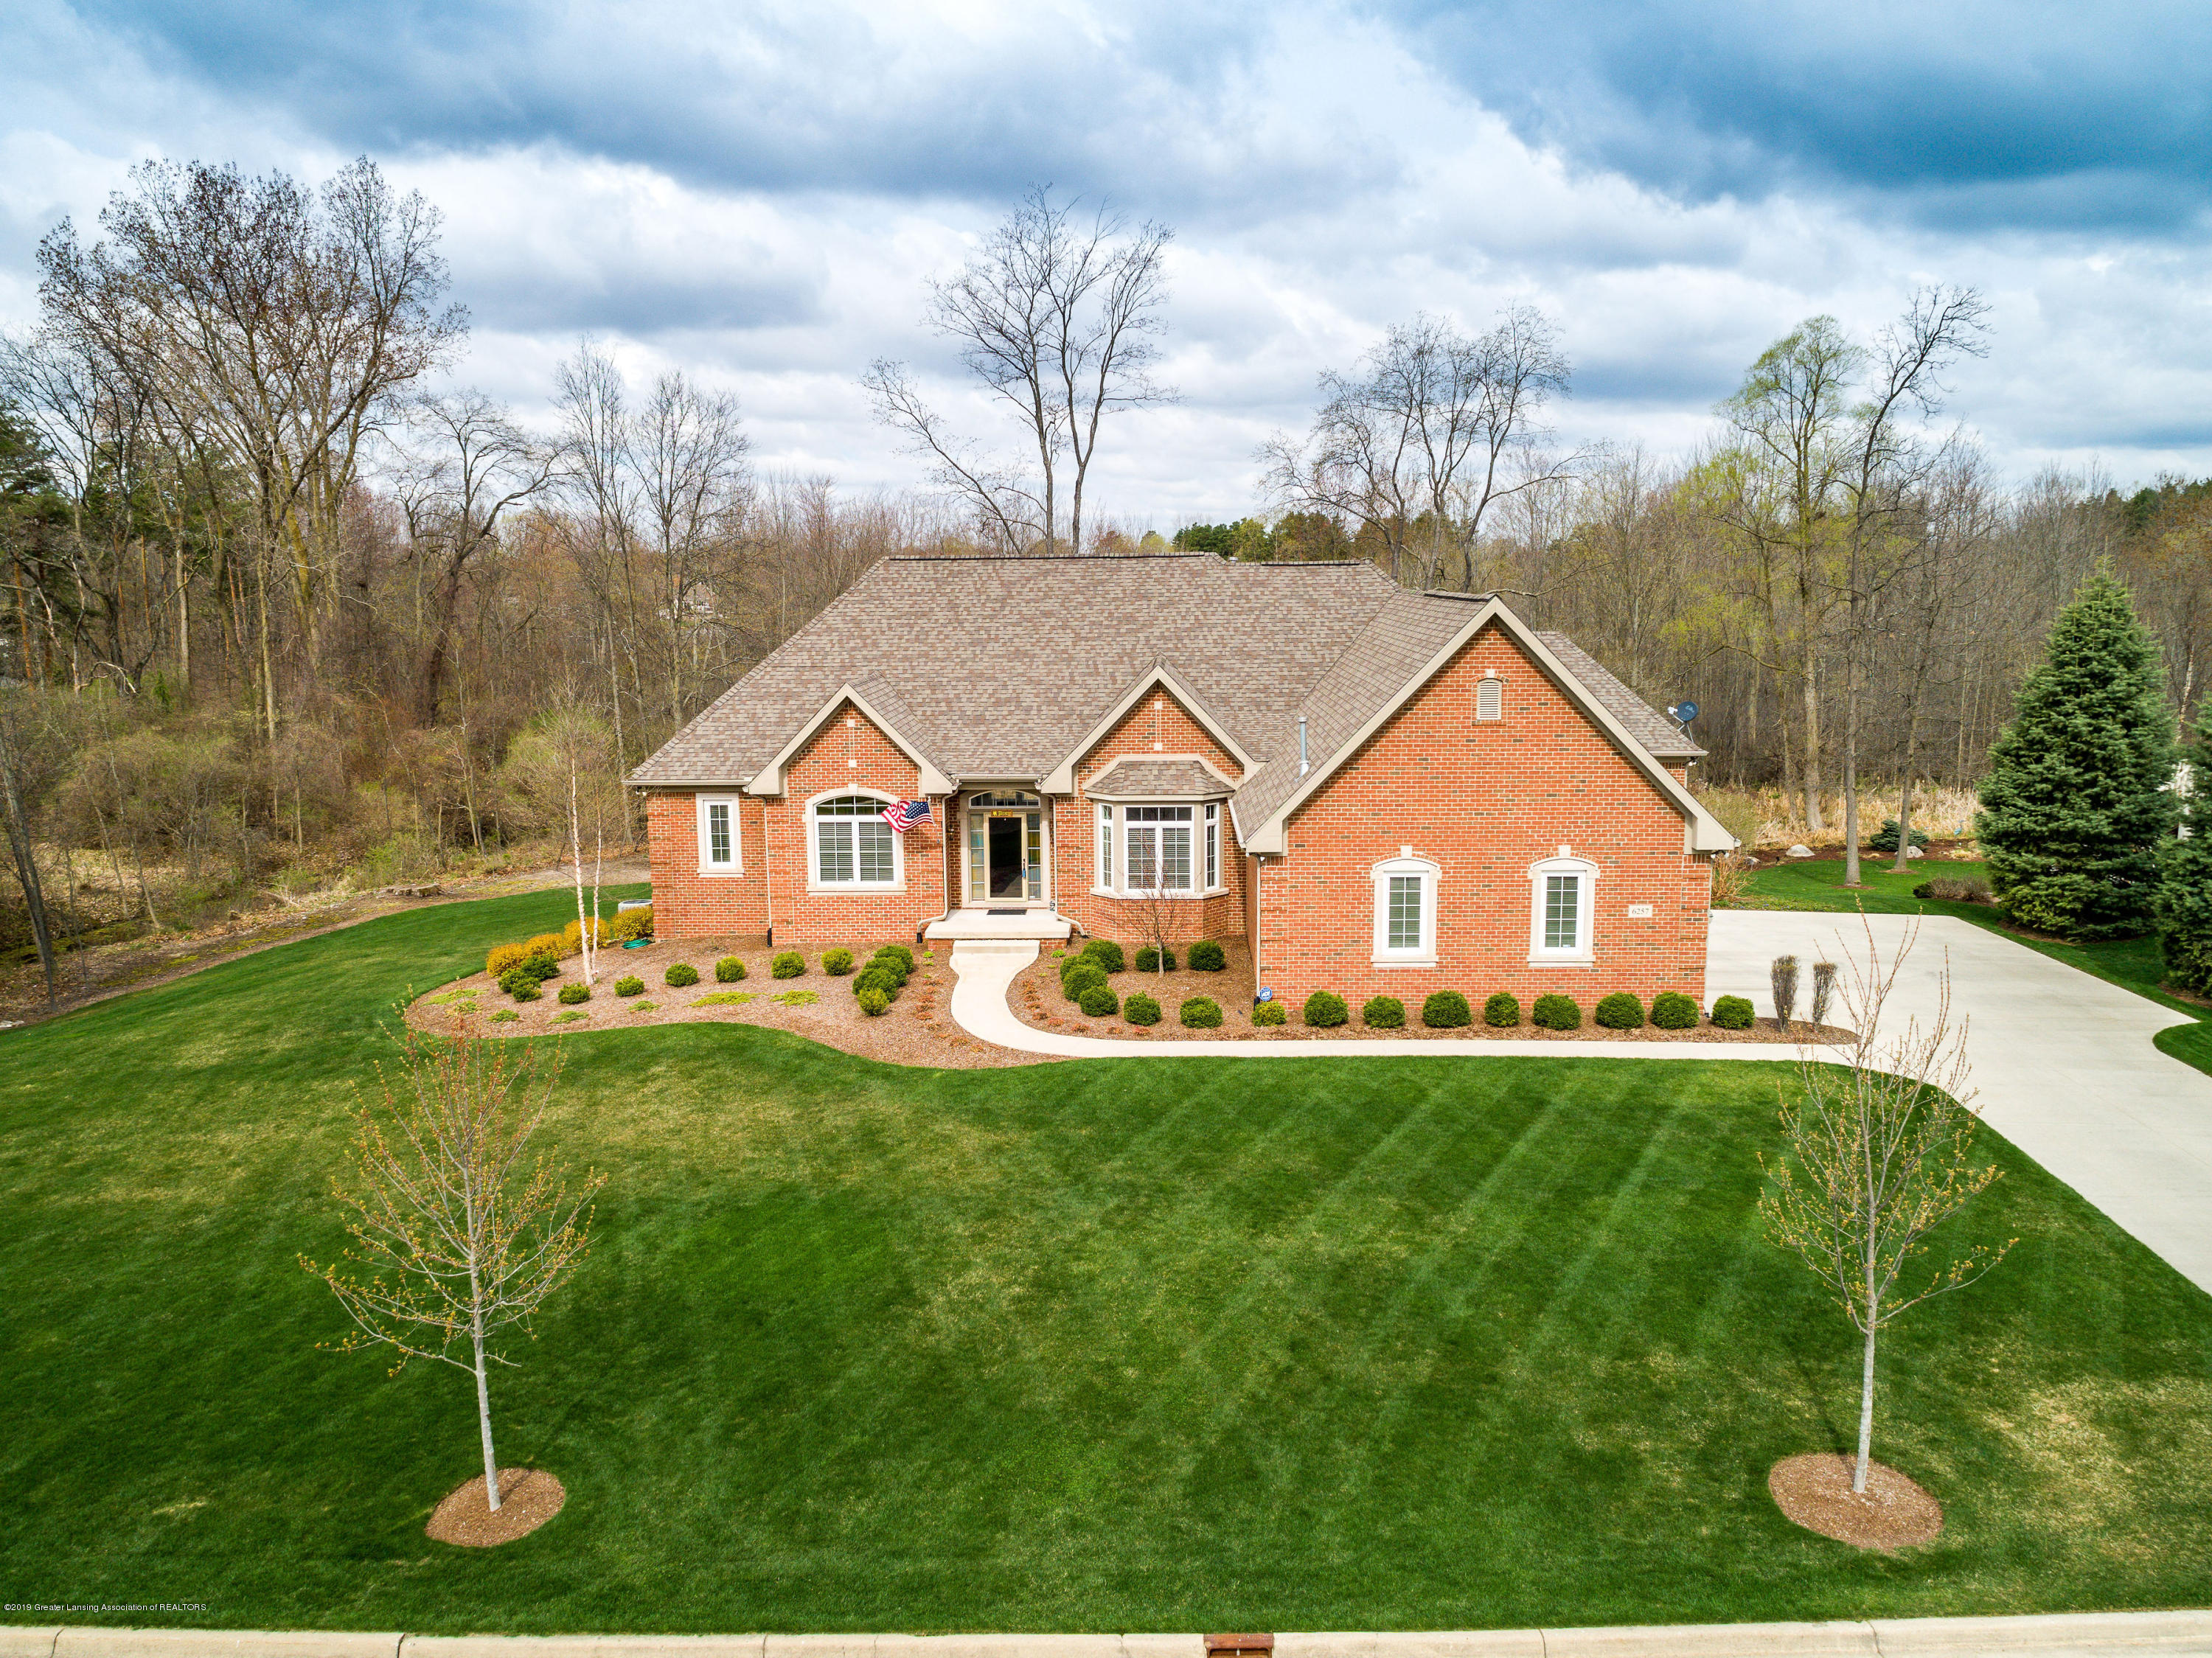 6257 Mereford Ct - 20190426-DJI_0783 - 1